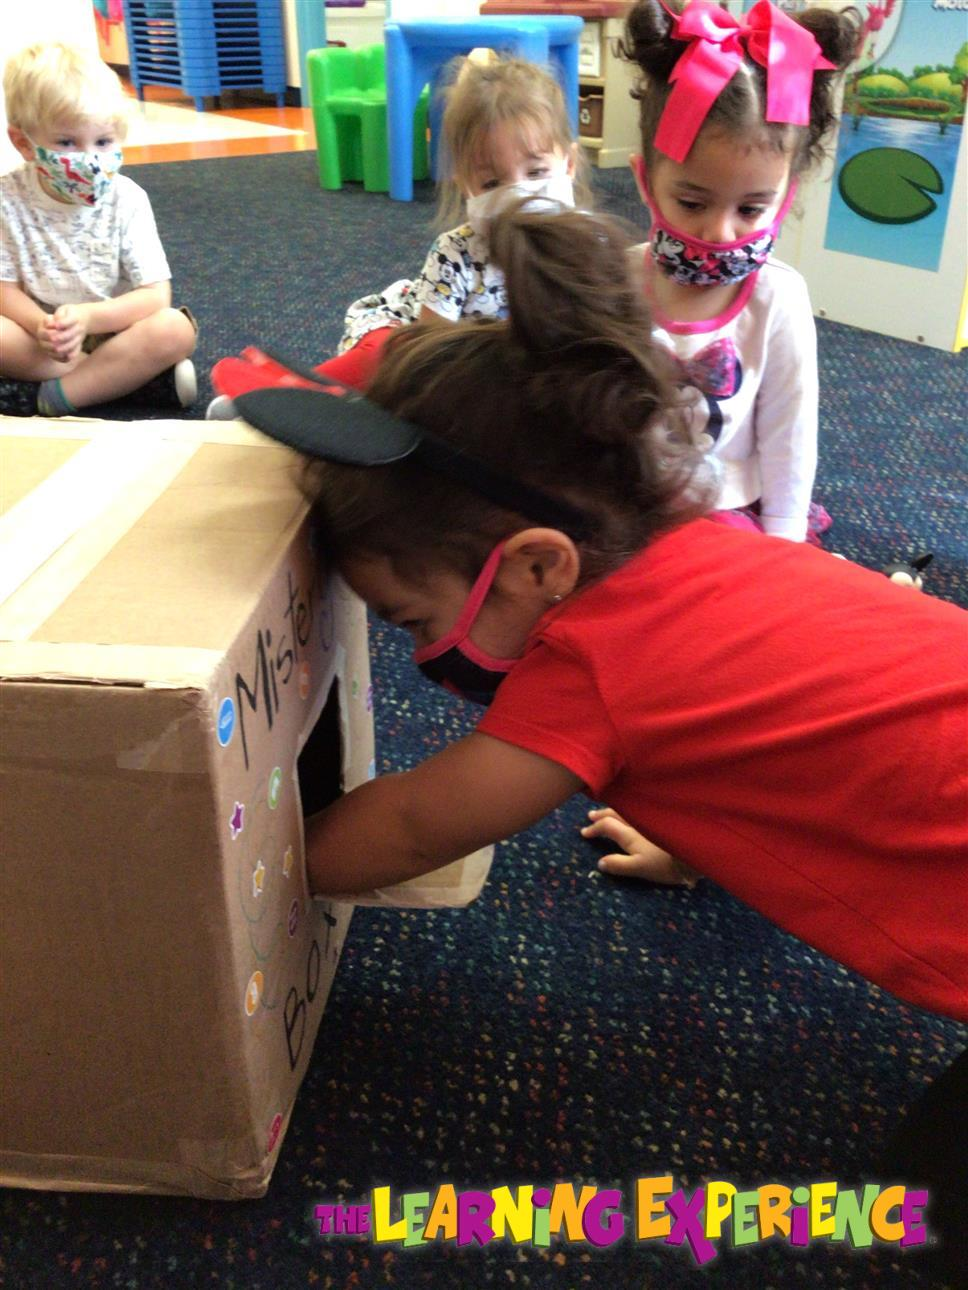 Flexible Childcare in Kendall